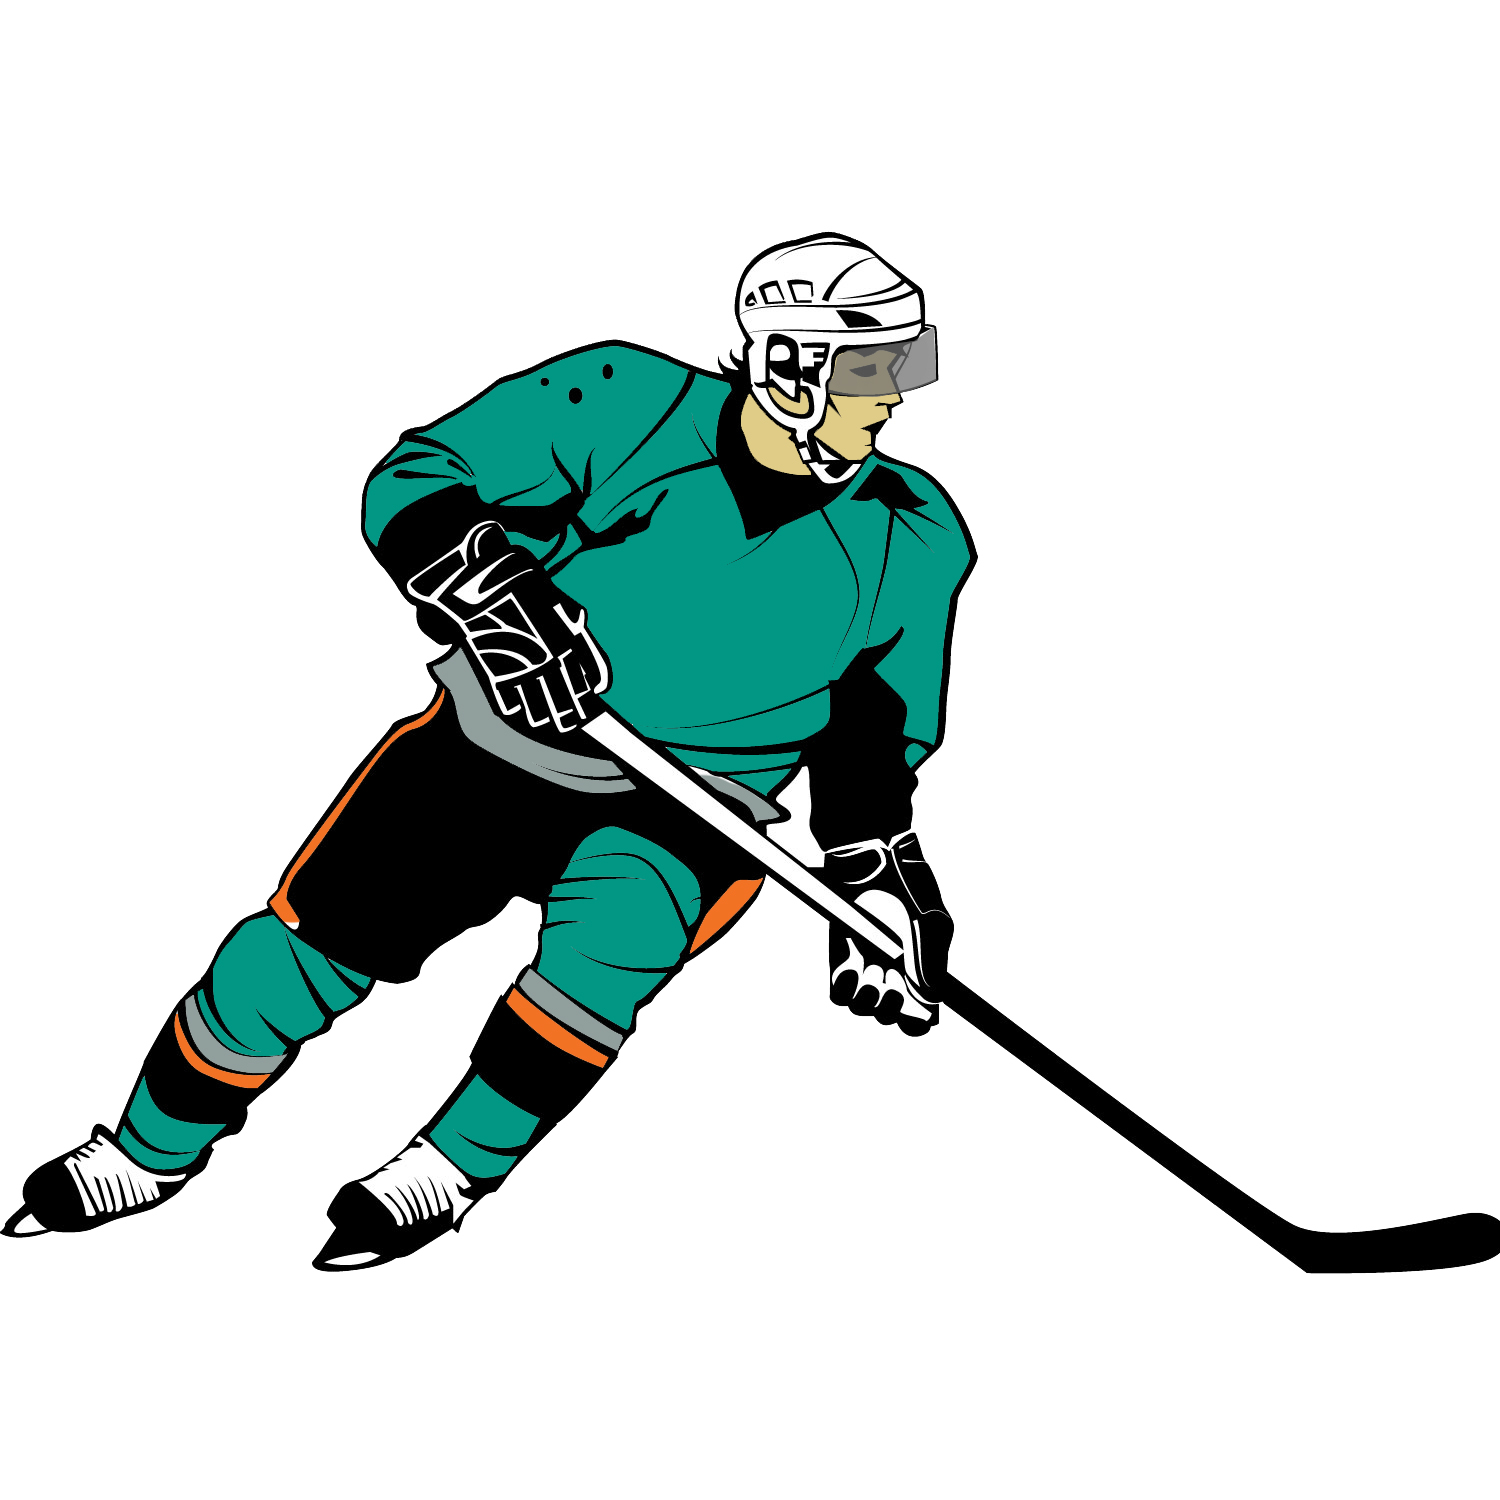 Ice hockey clipart free clip black and white download Free Girls Hockey Cliparts, Download Free Clip Art, Free ... clip black and white download